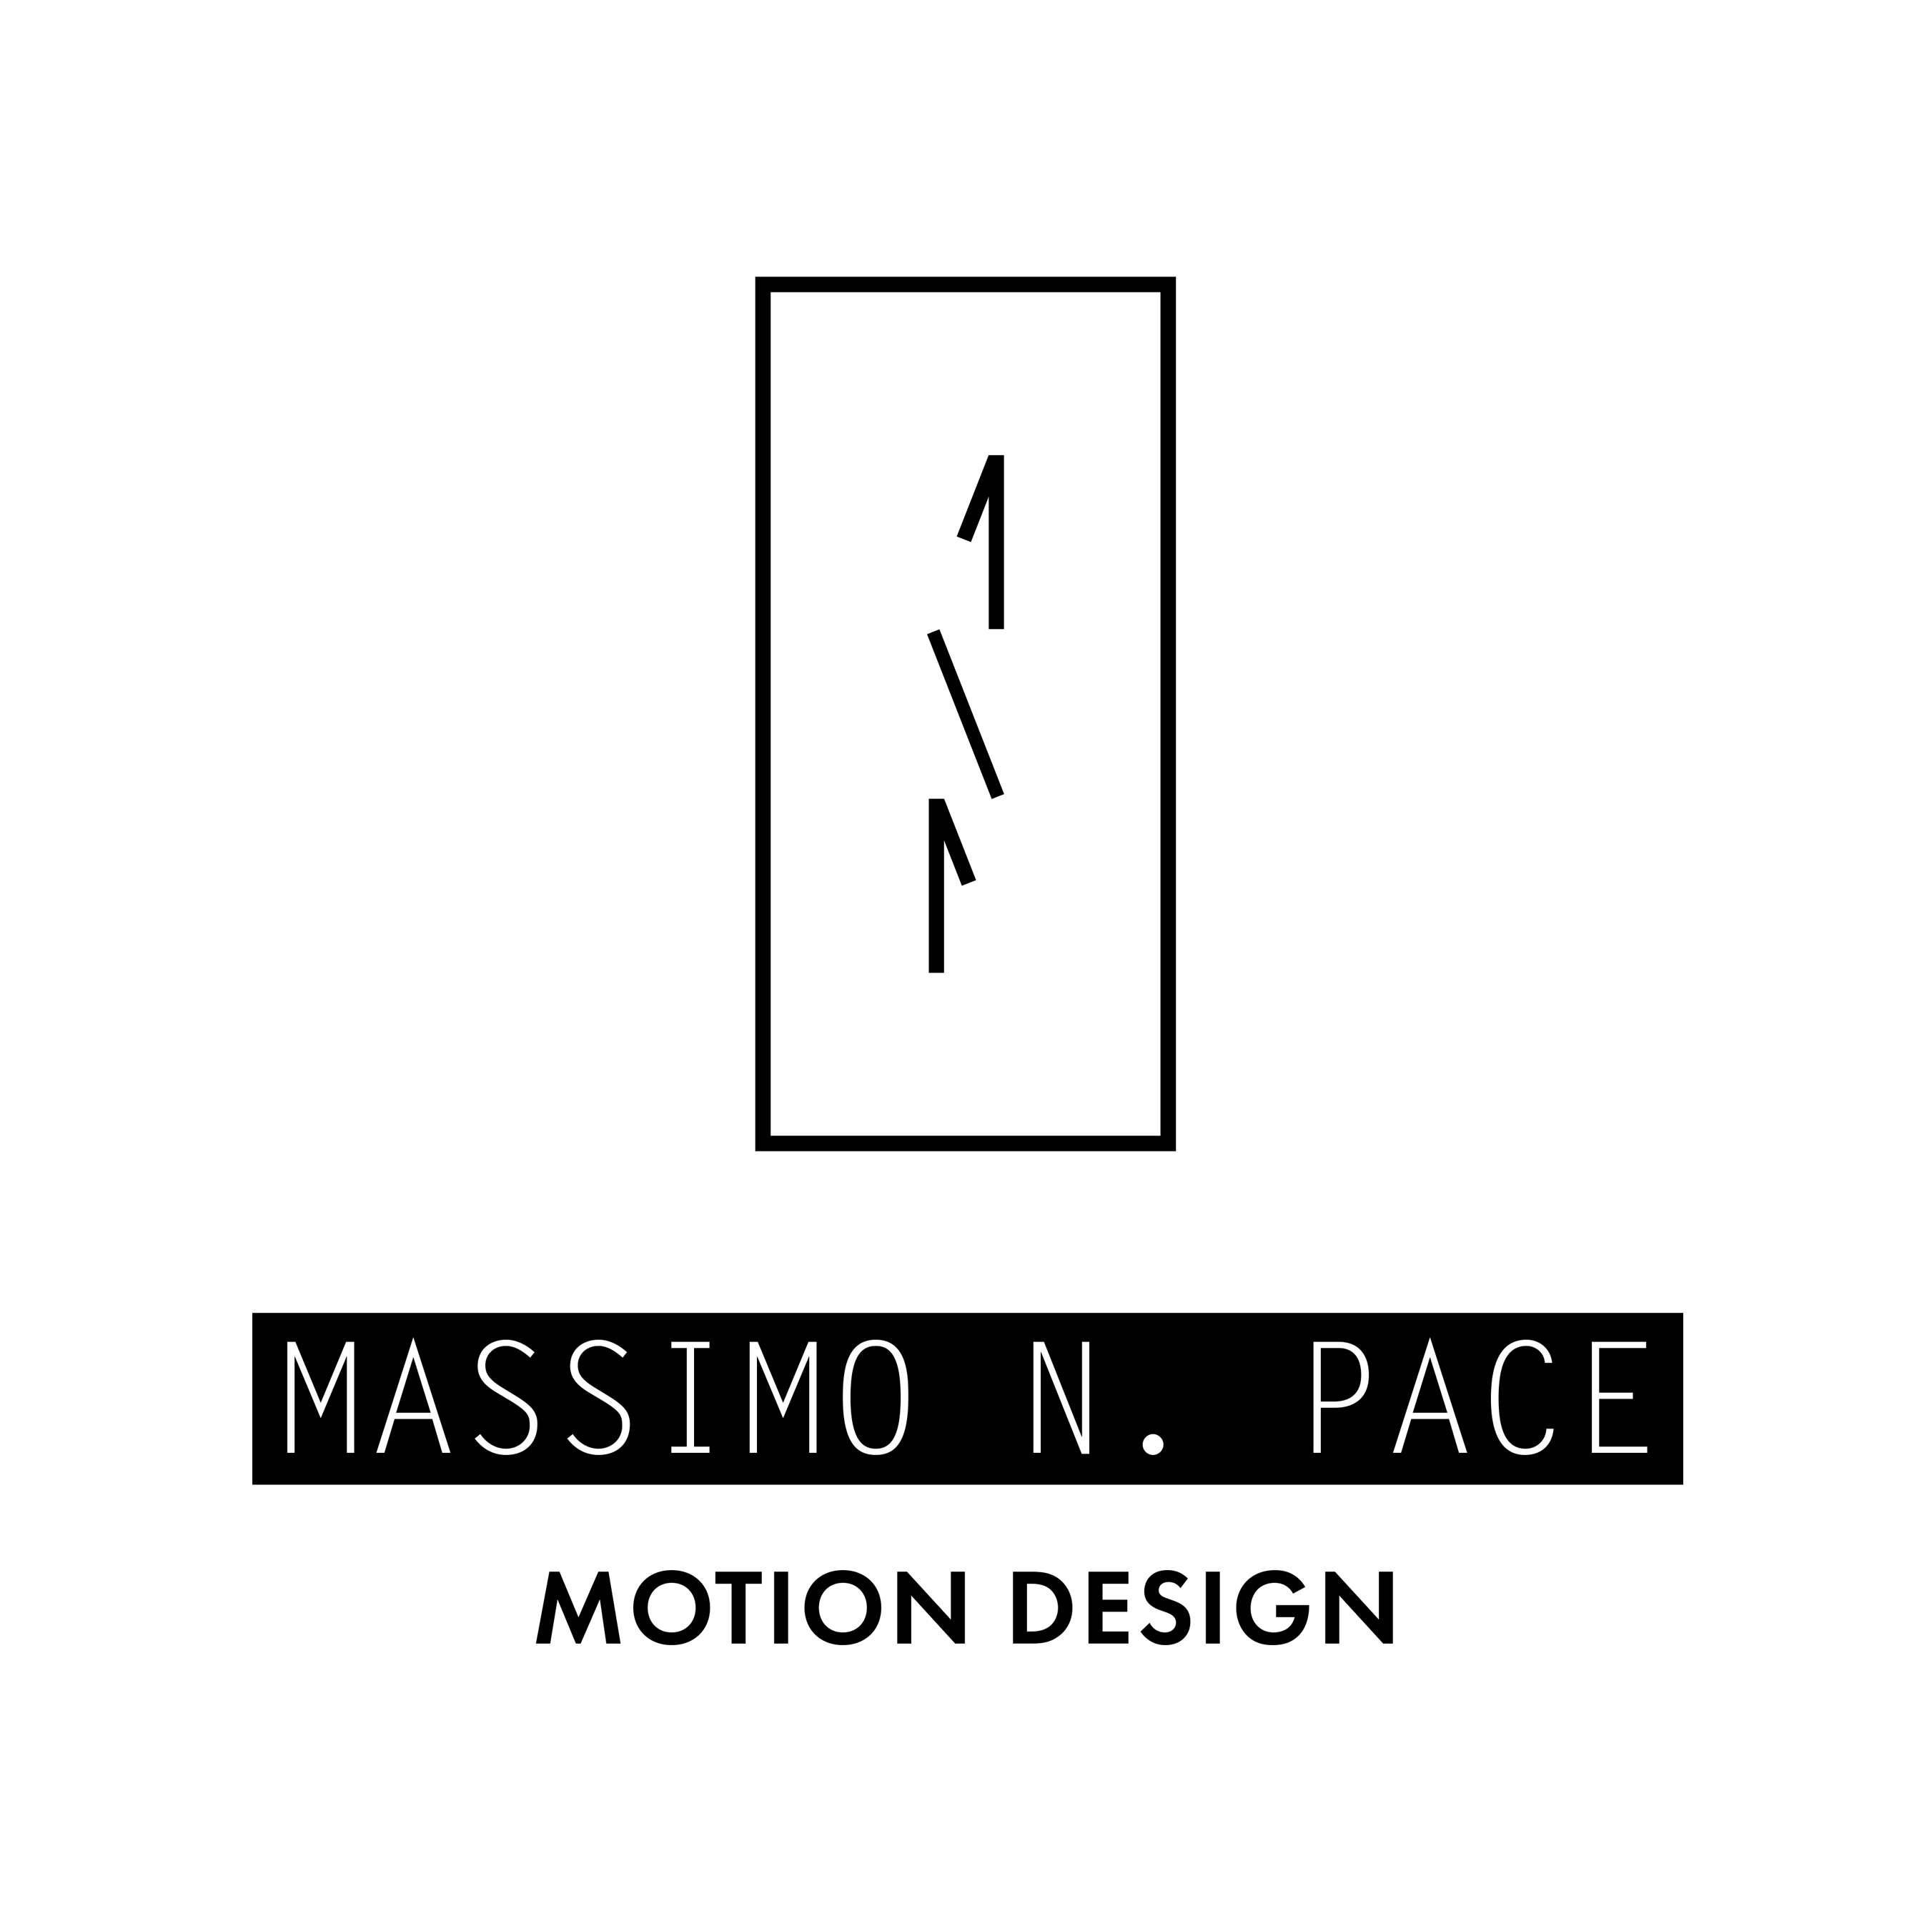 Massimo Natale Pace